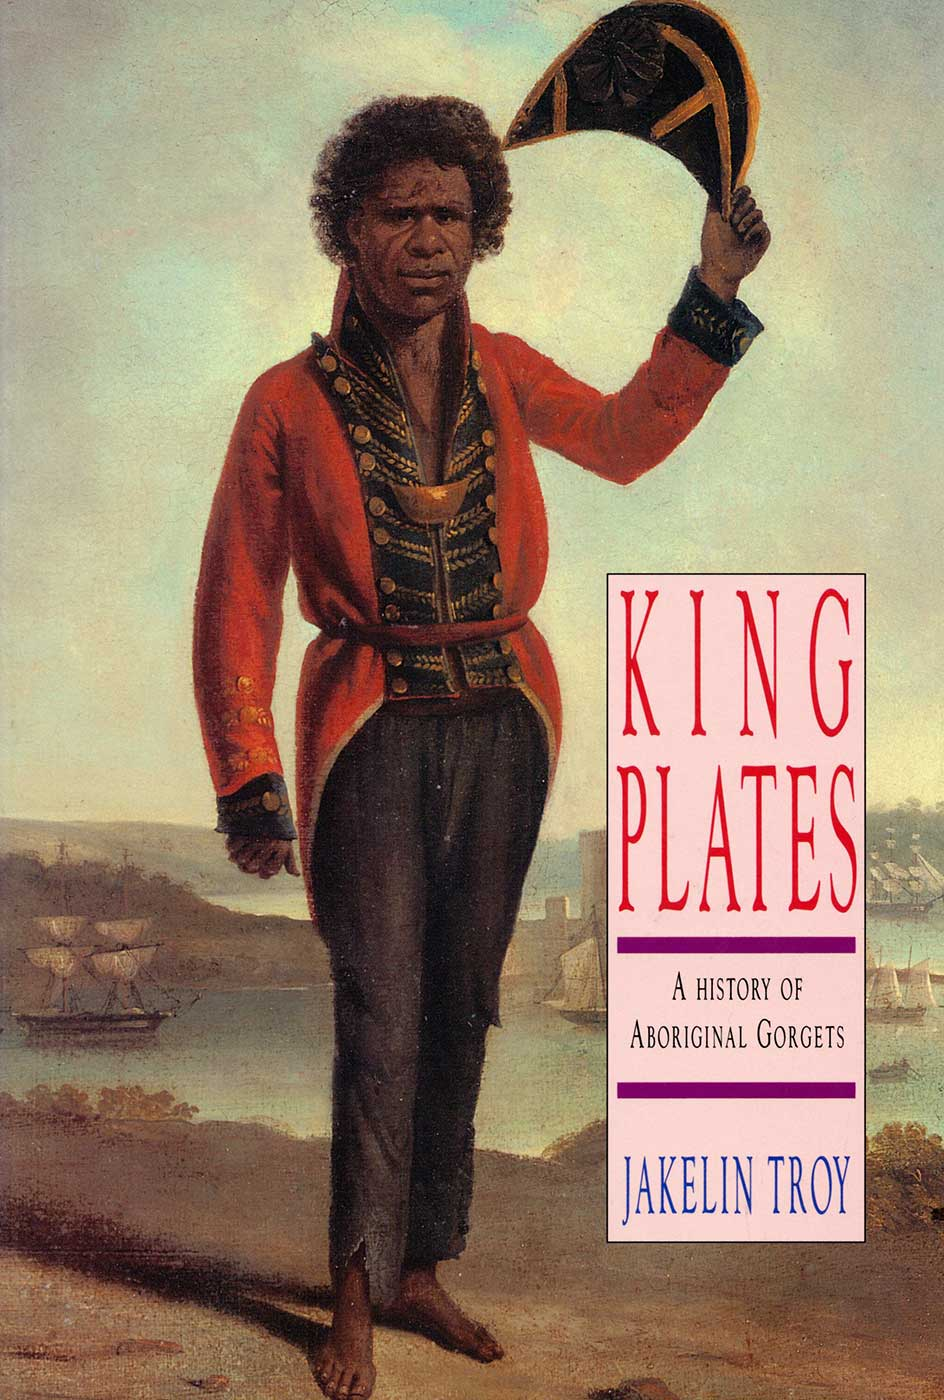 Book cover titled 'KING PLATES. A HISTORY OF ABORIGINAL GORGETS' by Jakelin Troy. - click to view larger image